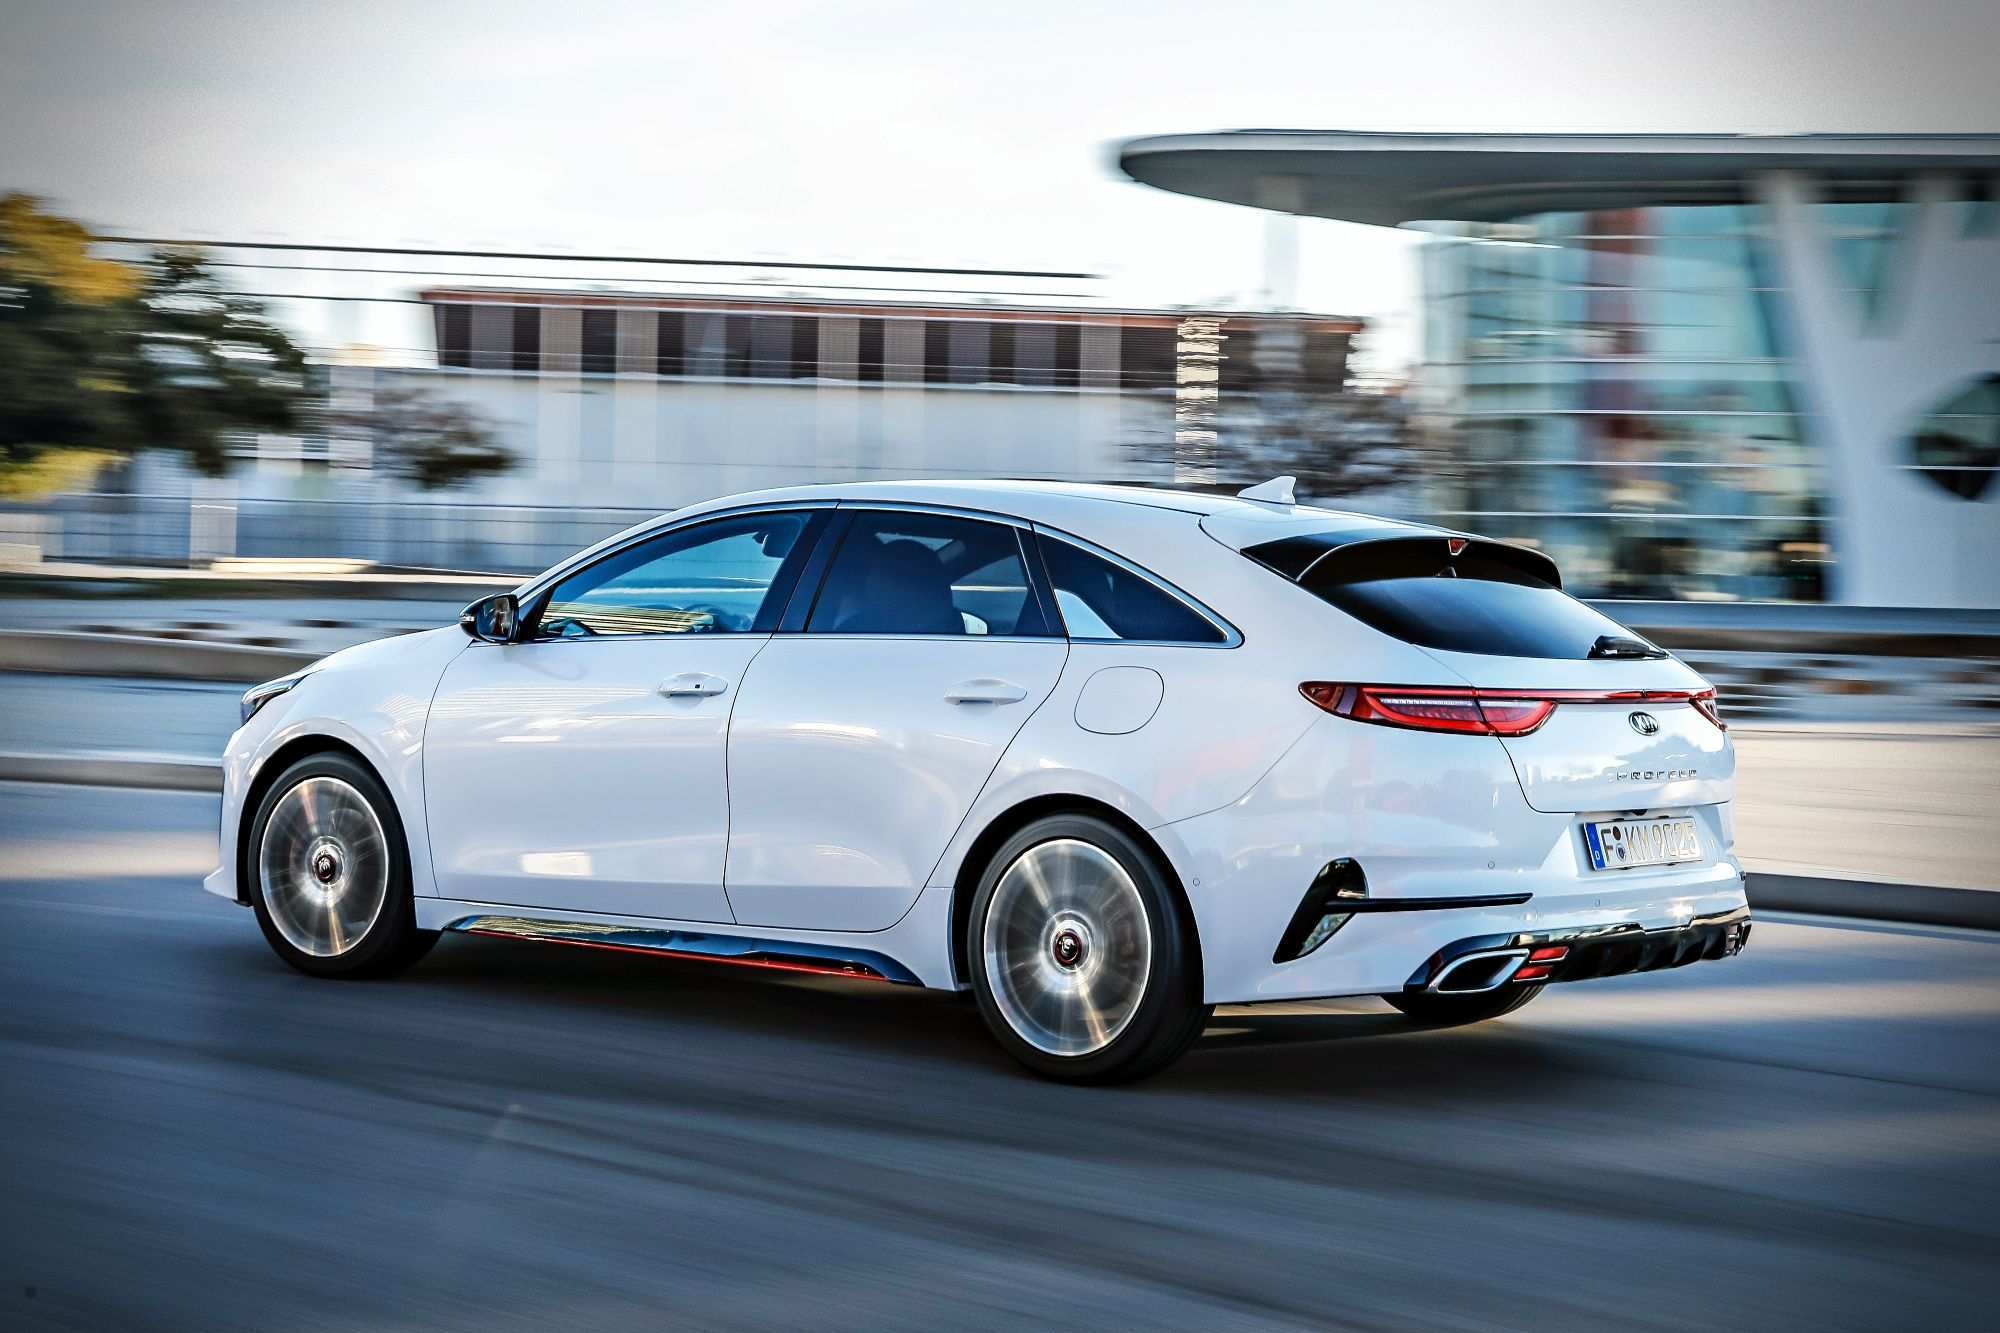 55 The Proceed Kia 2019 Images